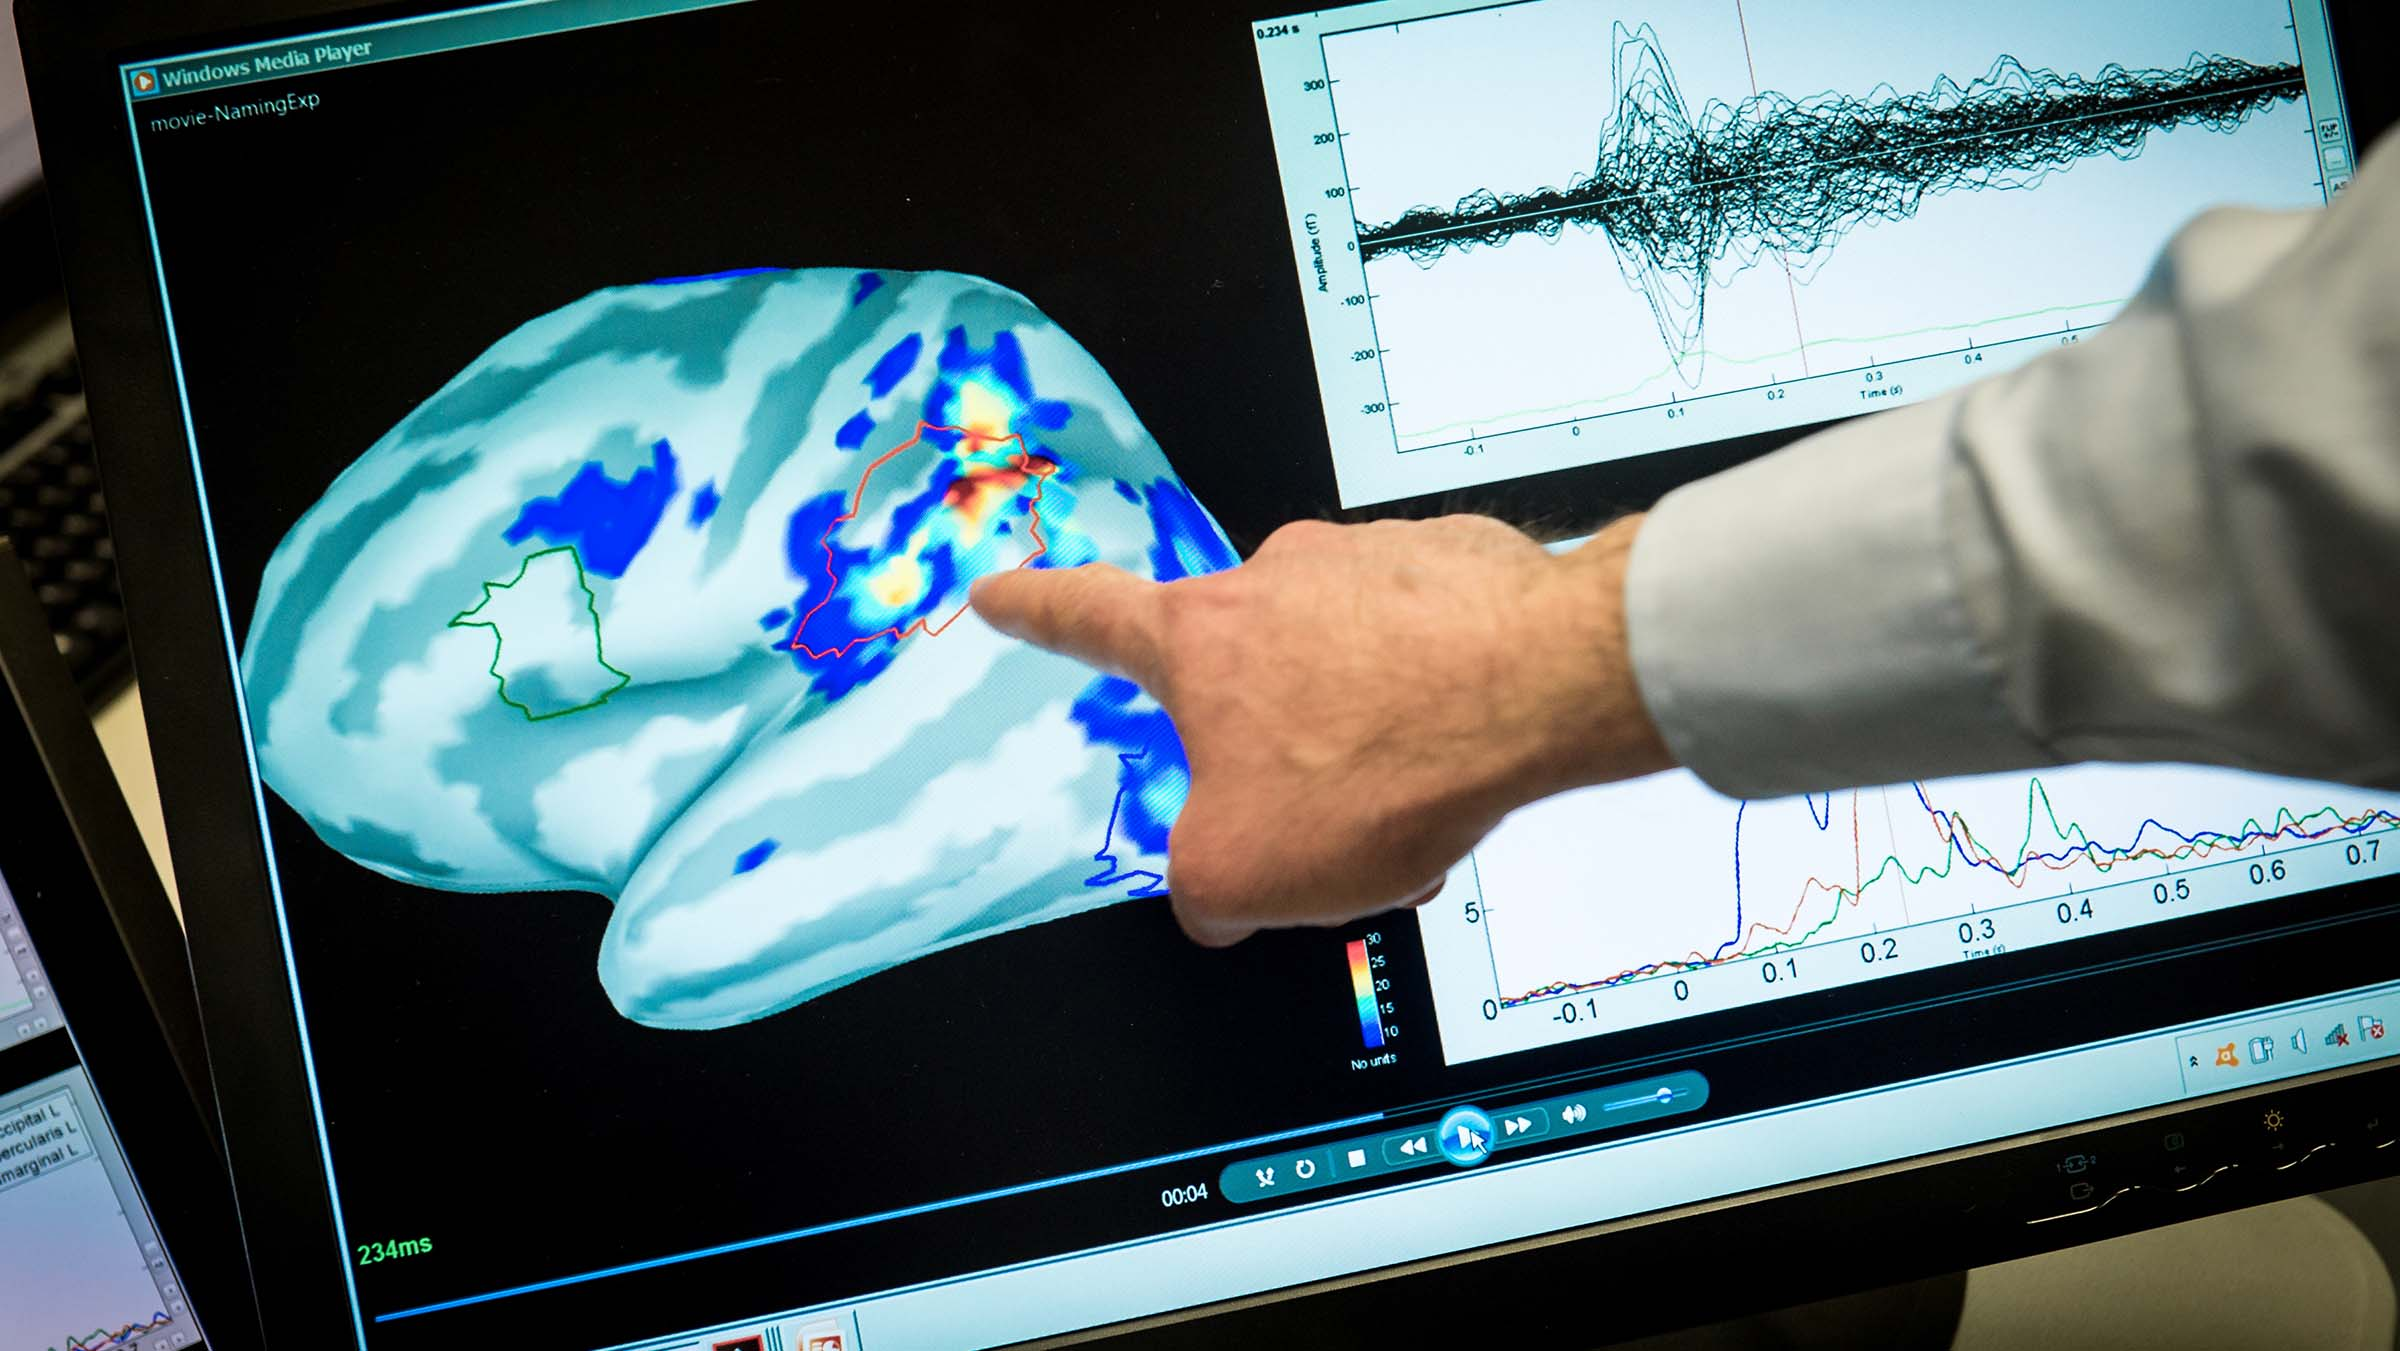 Health specialist points out areas of magnetic activity in a brain displayed on a monitor.